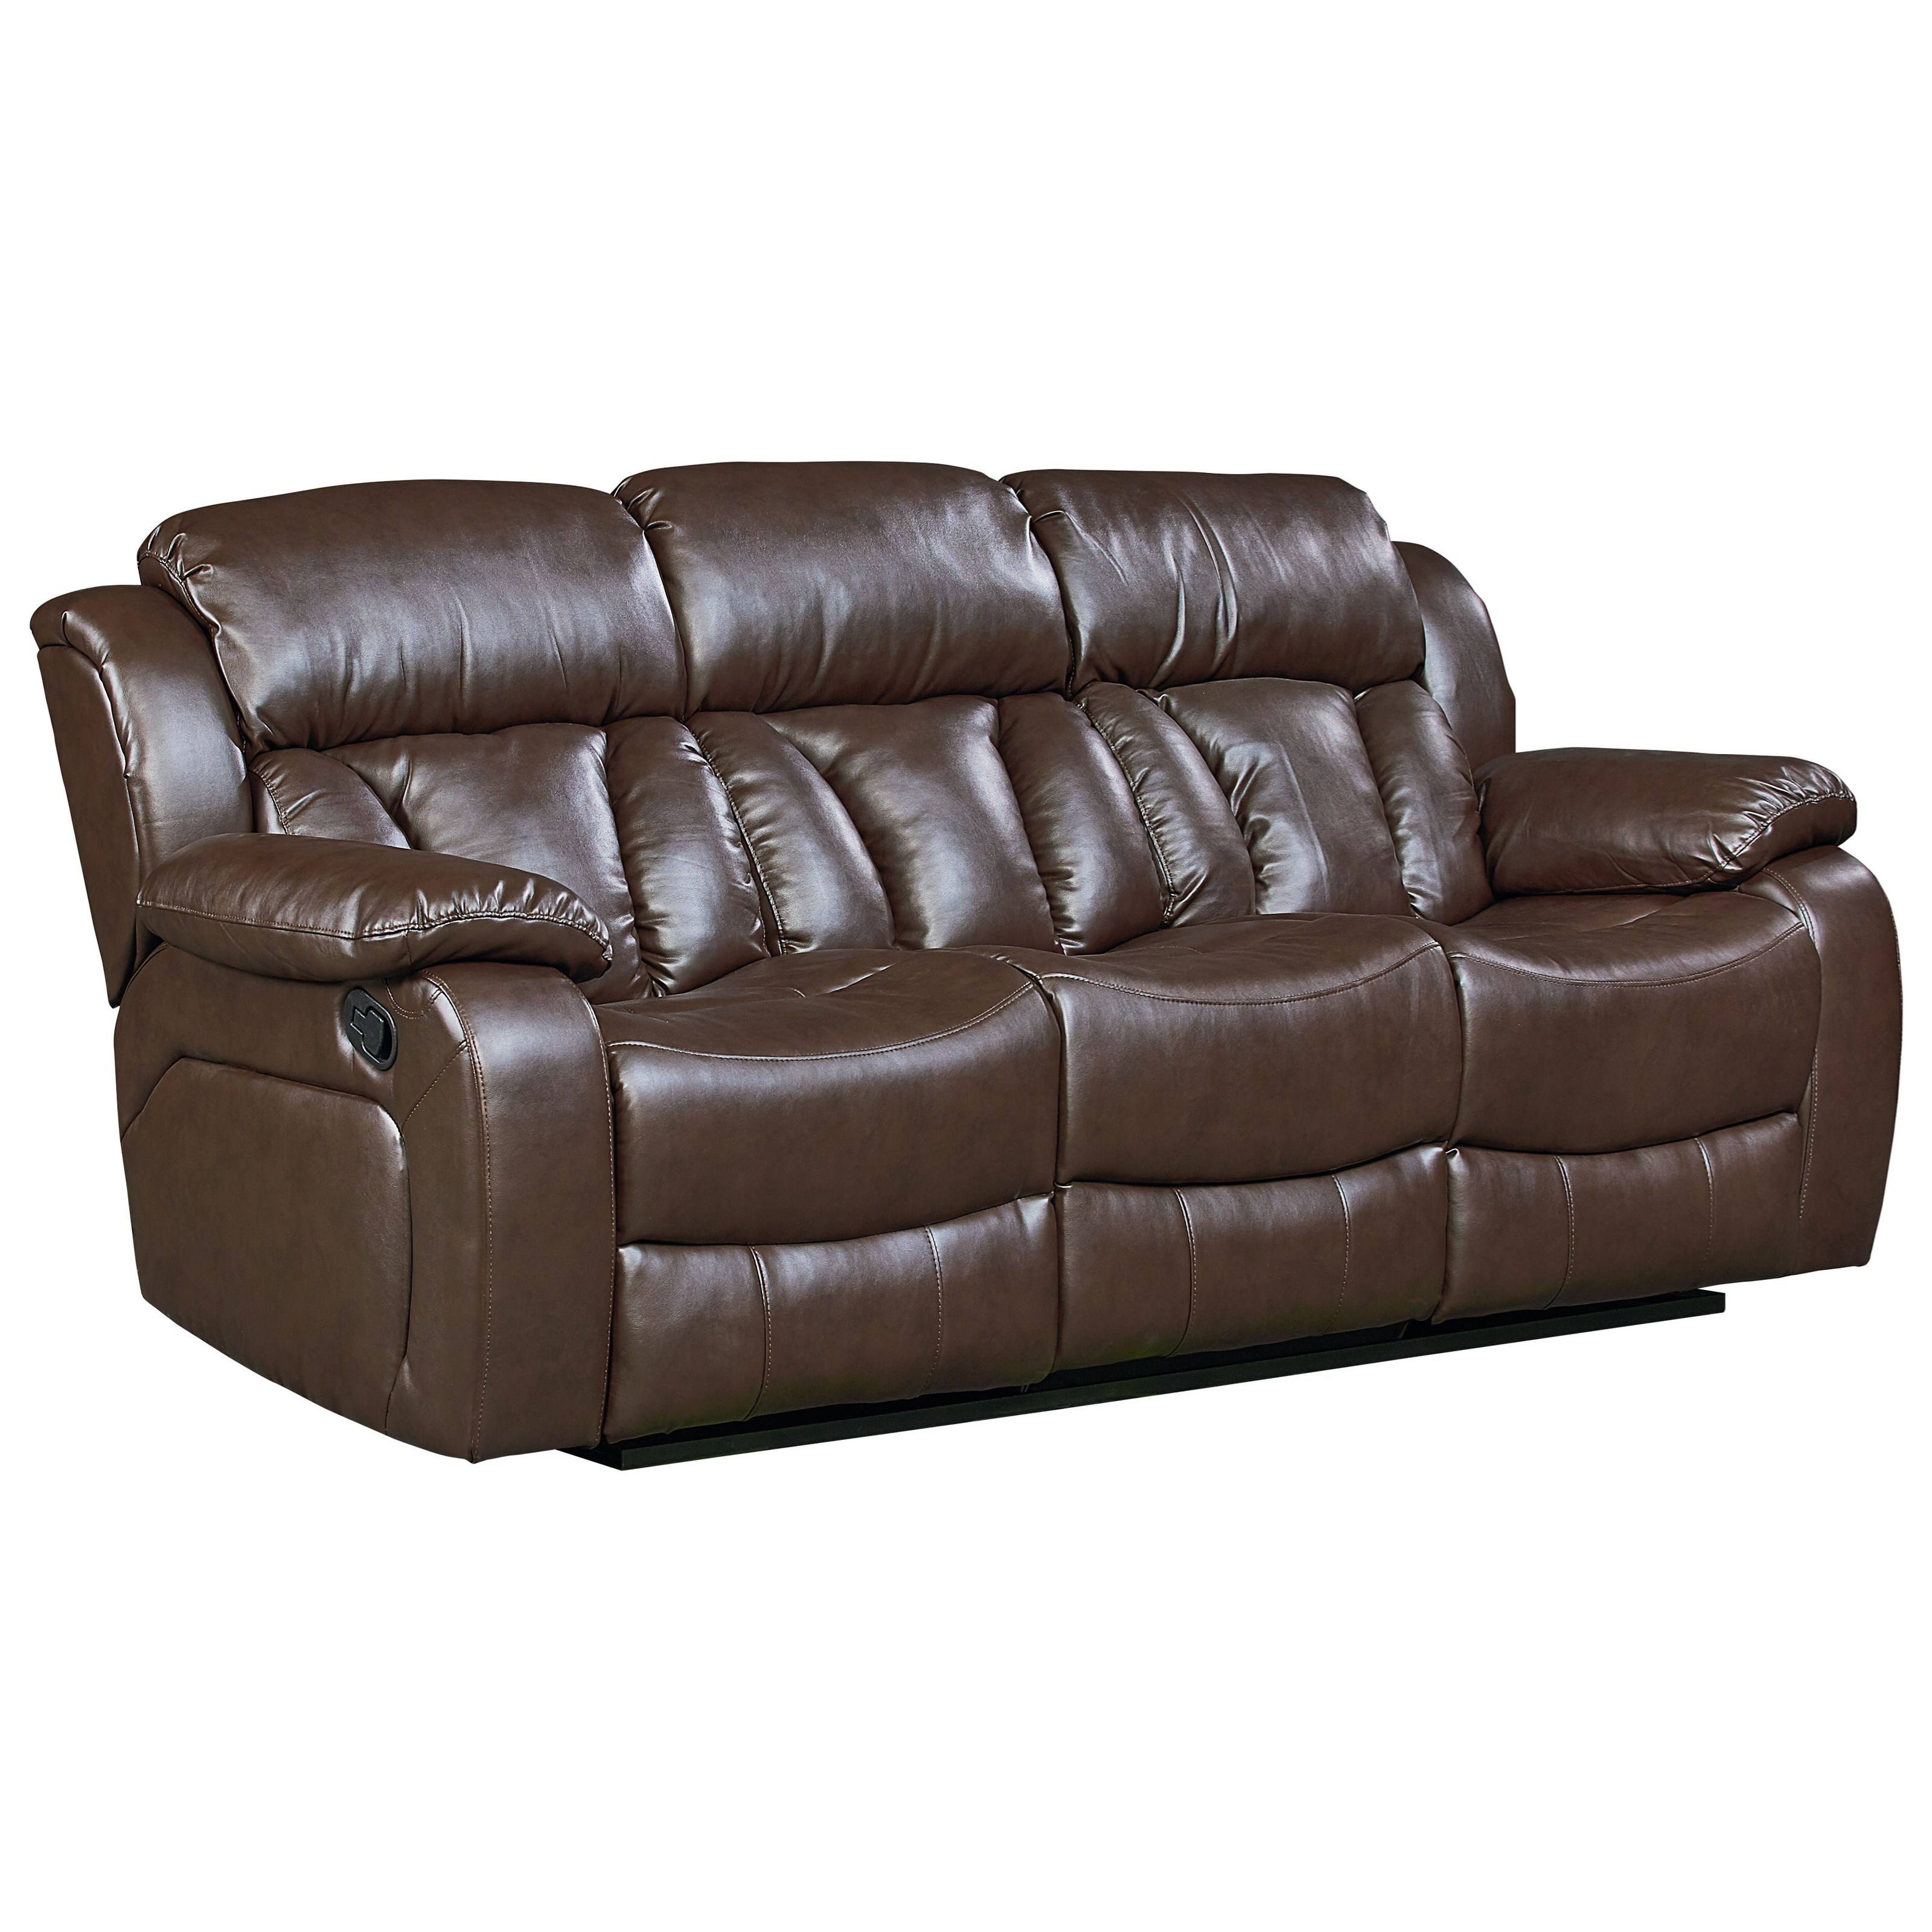 Standard Furniture North Shore Reclining Sofa - Item Number: 4003391